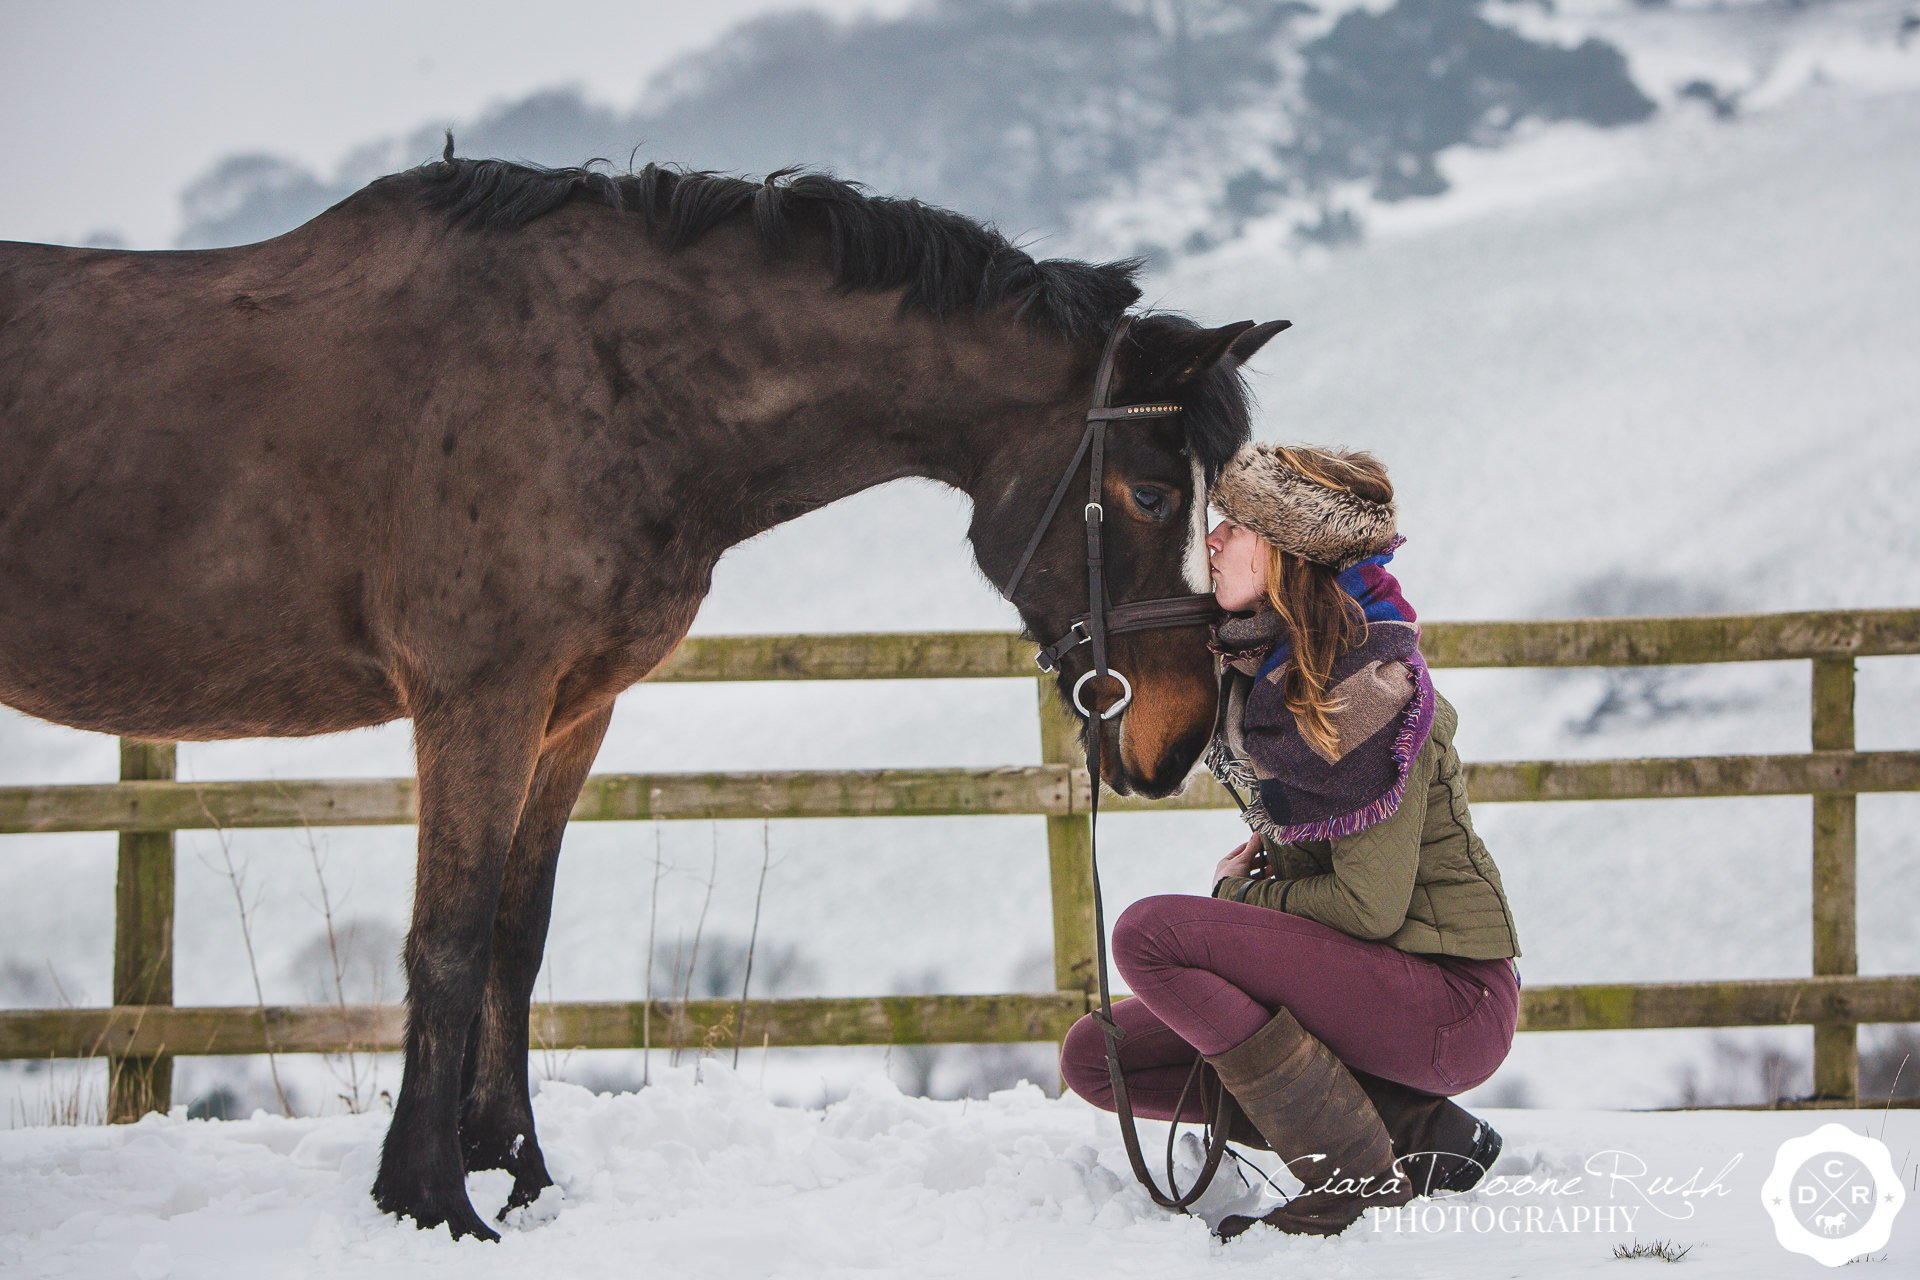 A Snowy Horse & Rider Photo Shoot with Laura Cocking